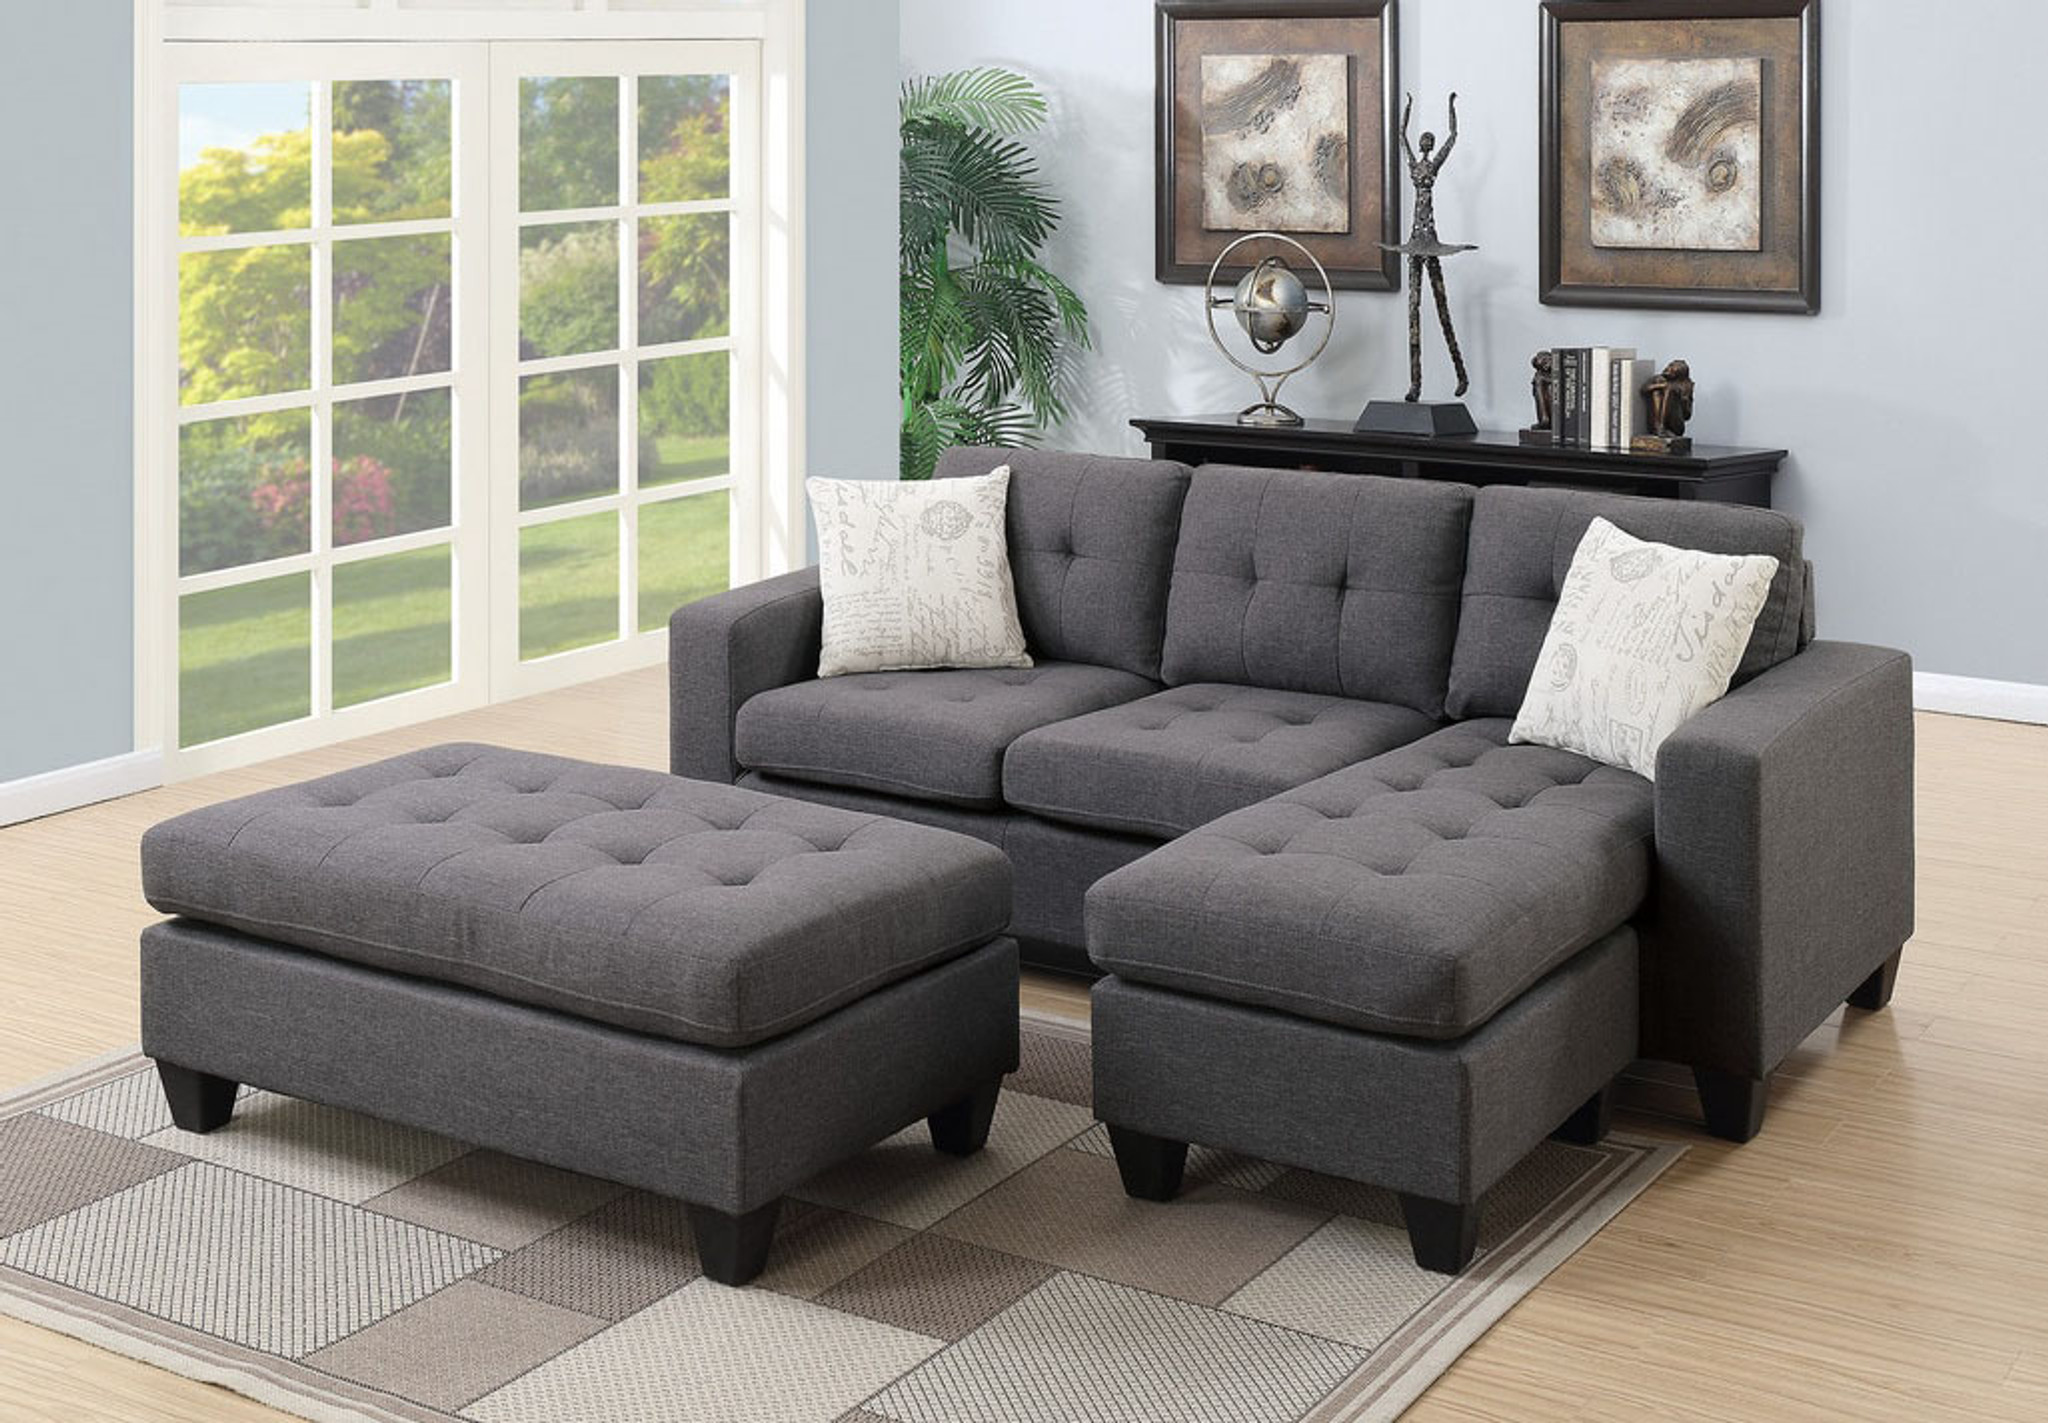 molly all in one sectional set with ottoman in blue gray